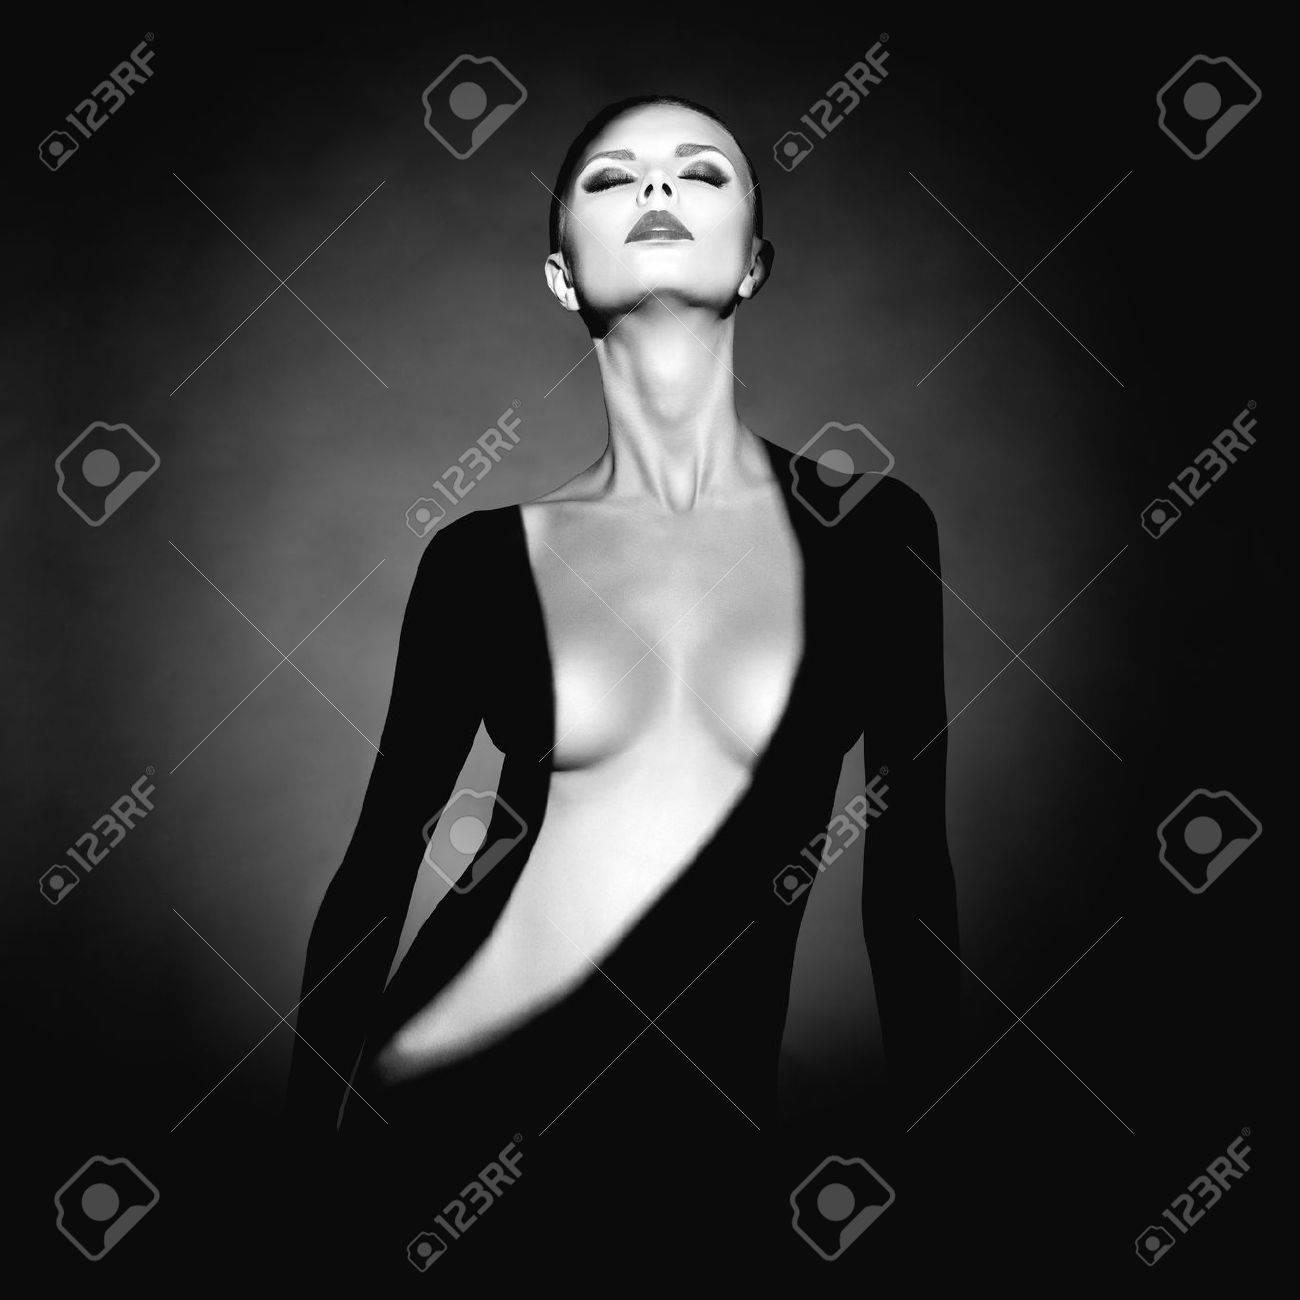 Fashion art studio portrait of elegant naked lady with shadow on her body Standard-Bild - 42833825